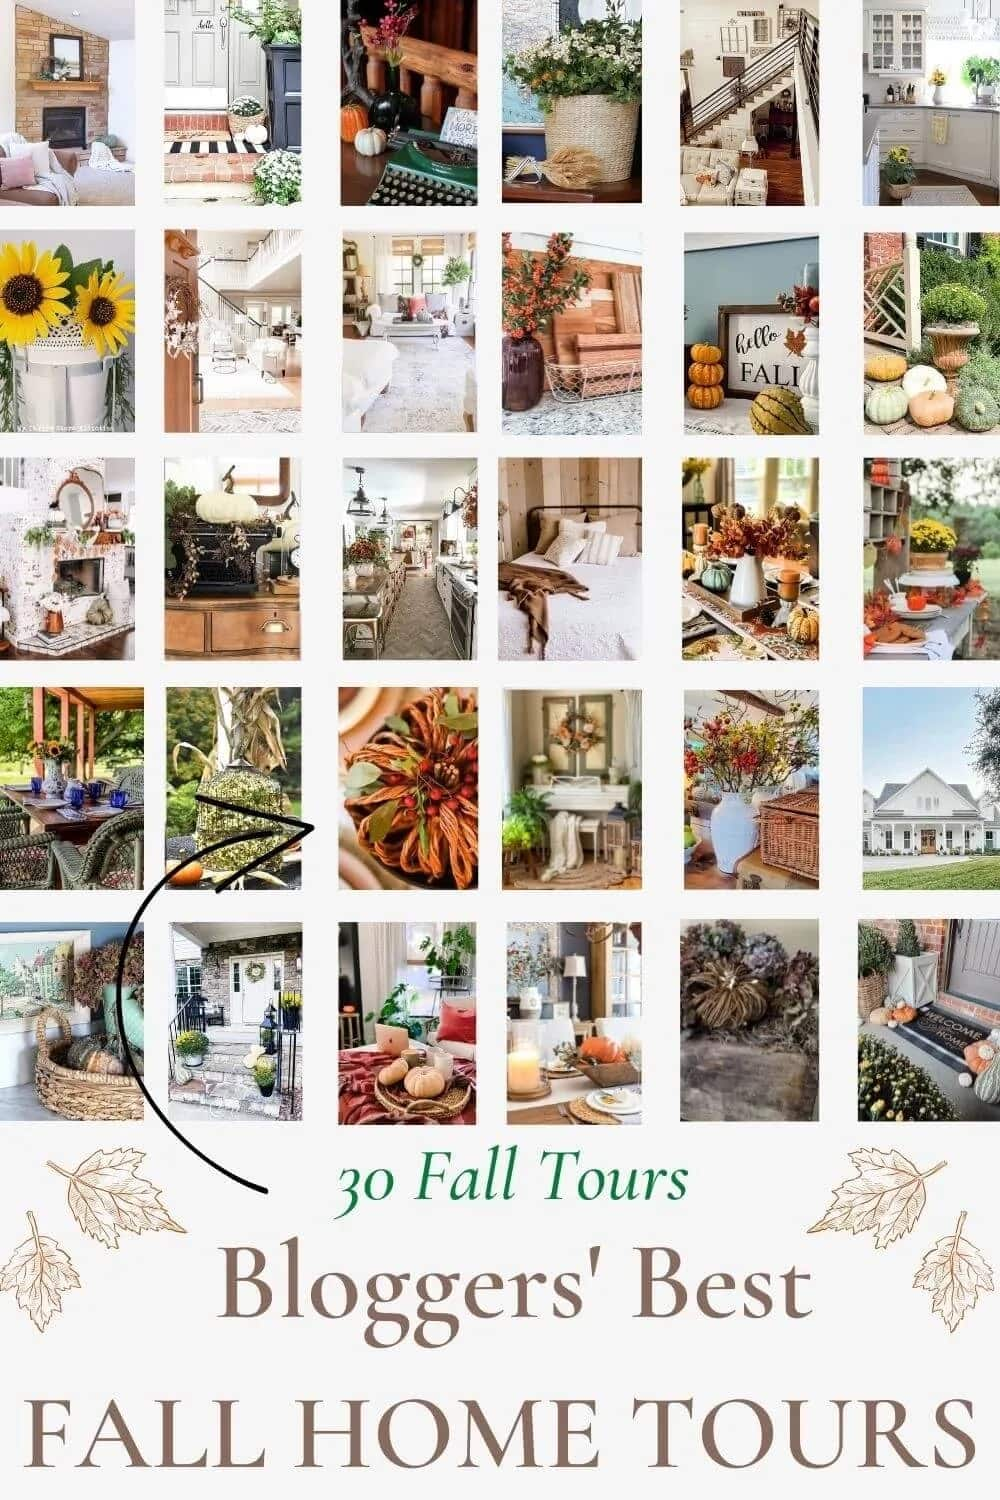 """Collage of fall home decor with text reading """"Bloggers' Best Fall Home Tours"""""""